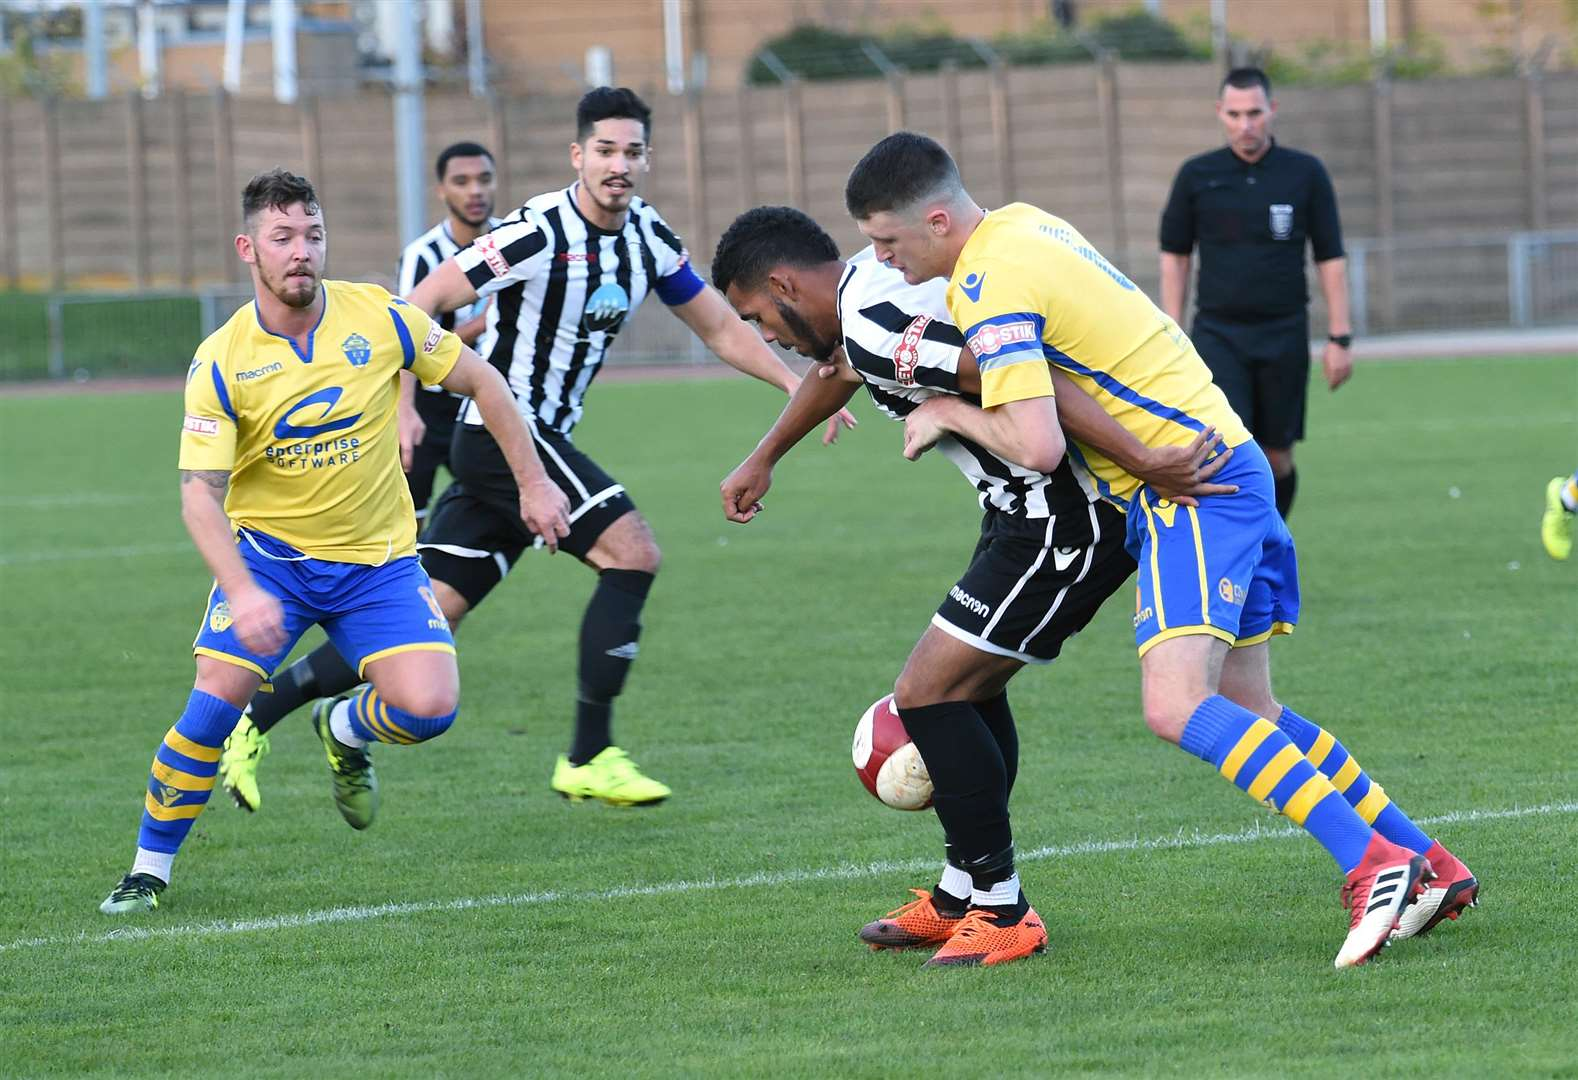 Action from Grantham Town v Warrington Town. Photo: Toby Roberts (5186989)